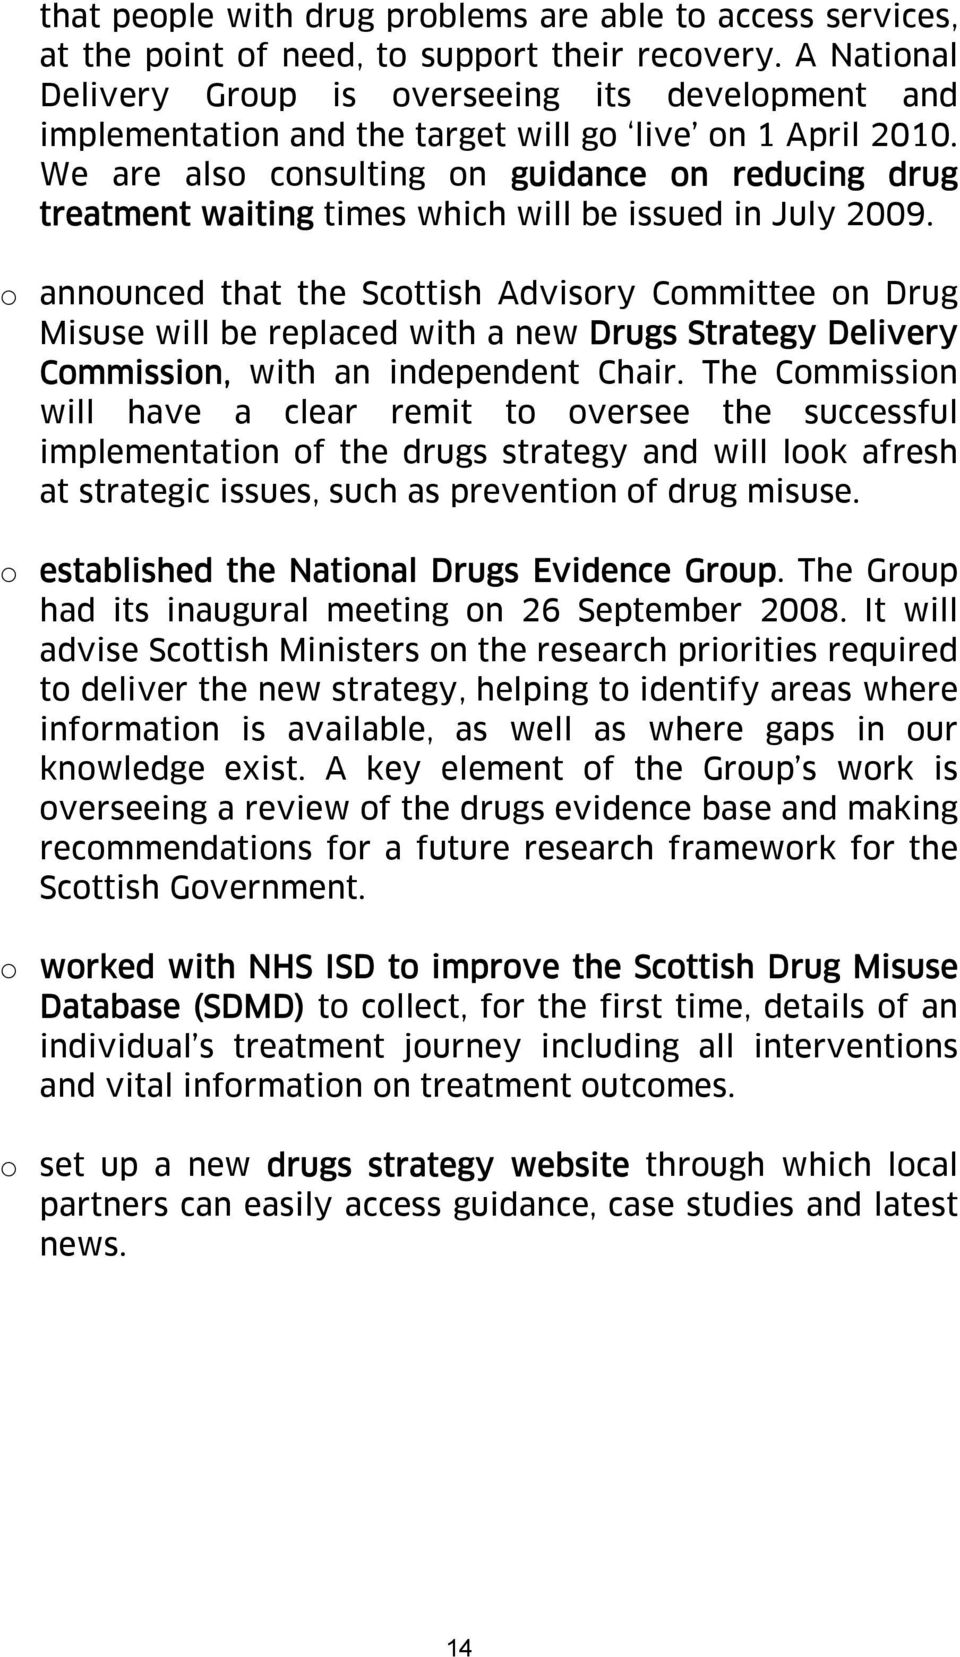 We are also consulting on guidance on reducing drug treatment waiting times which will be issued in July 2009.